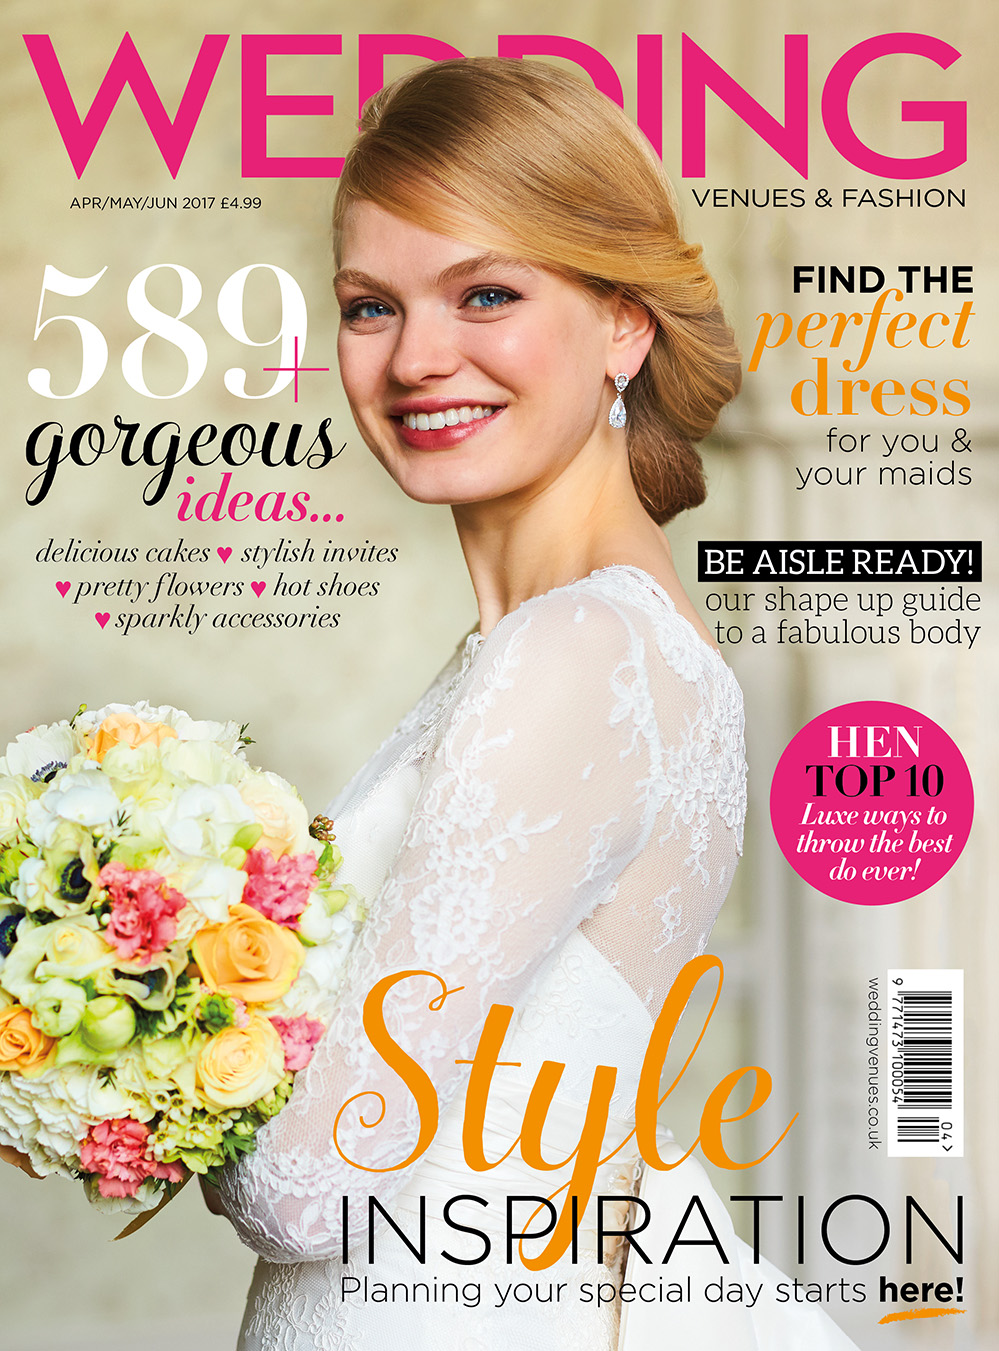 Wedding Venues & Services Magazine